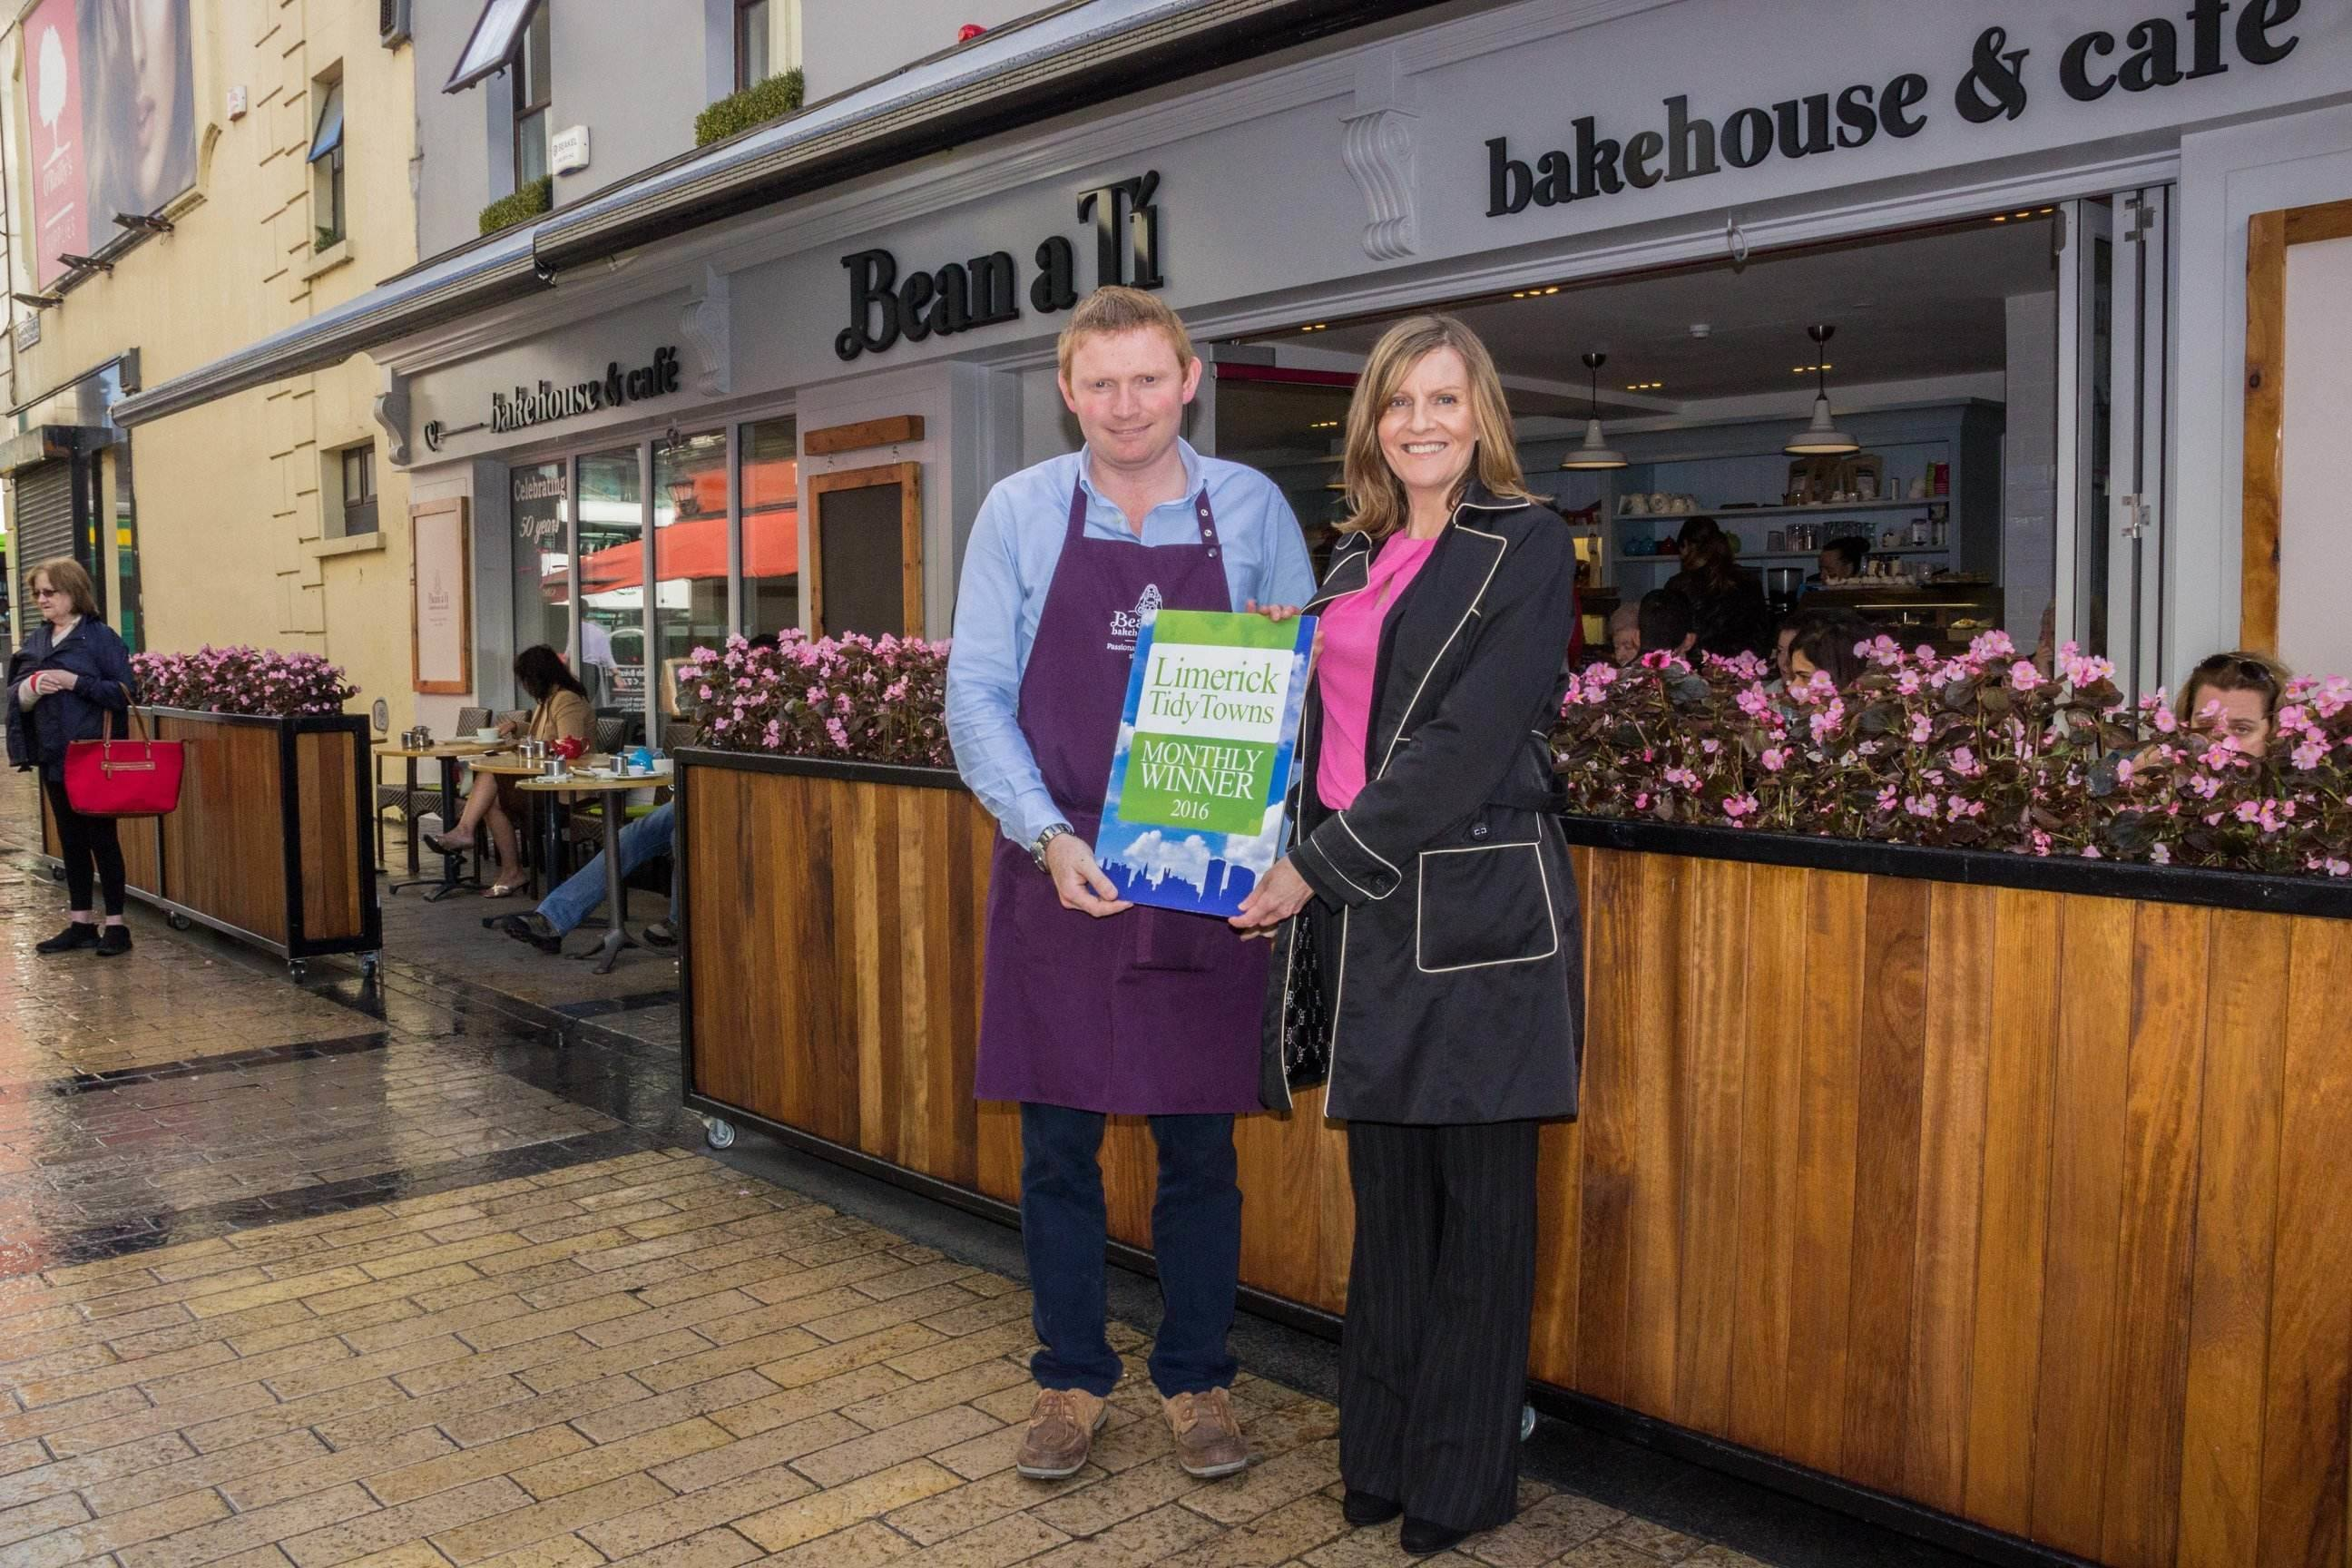 Bean Ati Celebrates Fifty Business Years. John Canty of Bean a Ti Bakery receiving the Limerick Tidy Towns Monthly Award September 2016 with Maura O'Neill of Limerick Tidy Towns. Picture Cian Reinhardt/ilovelimerick.